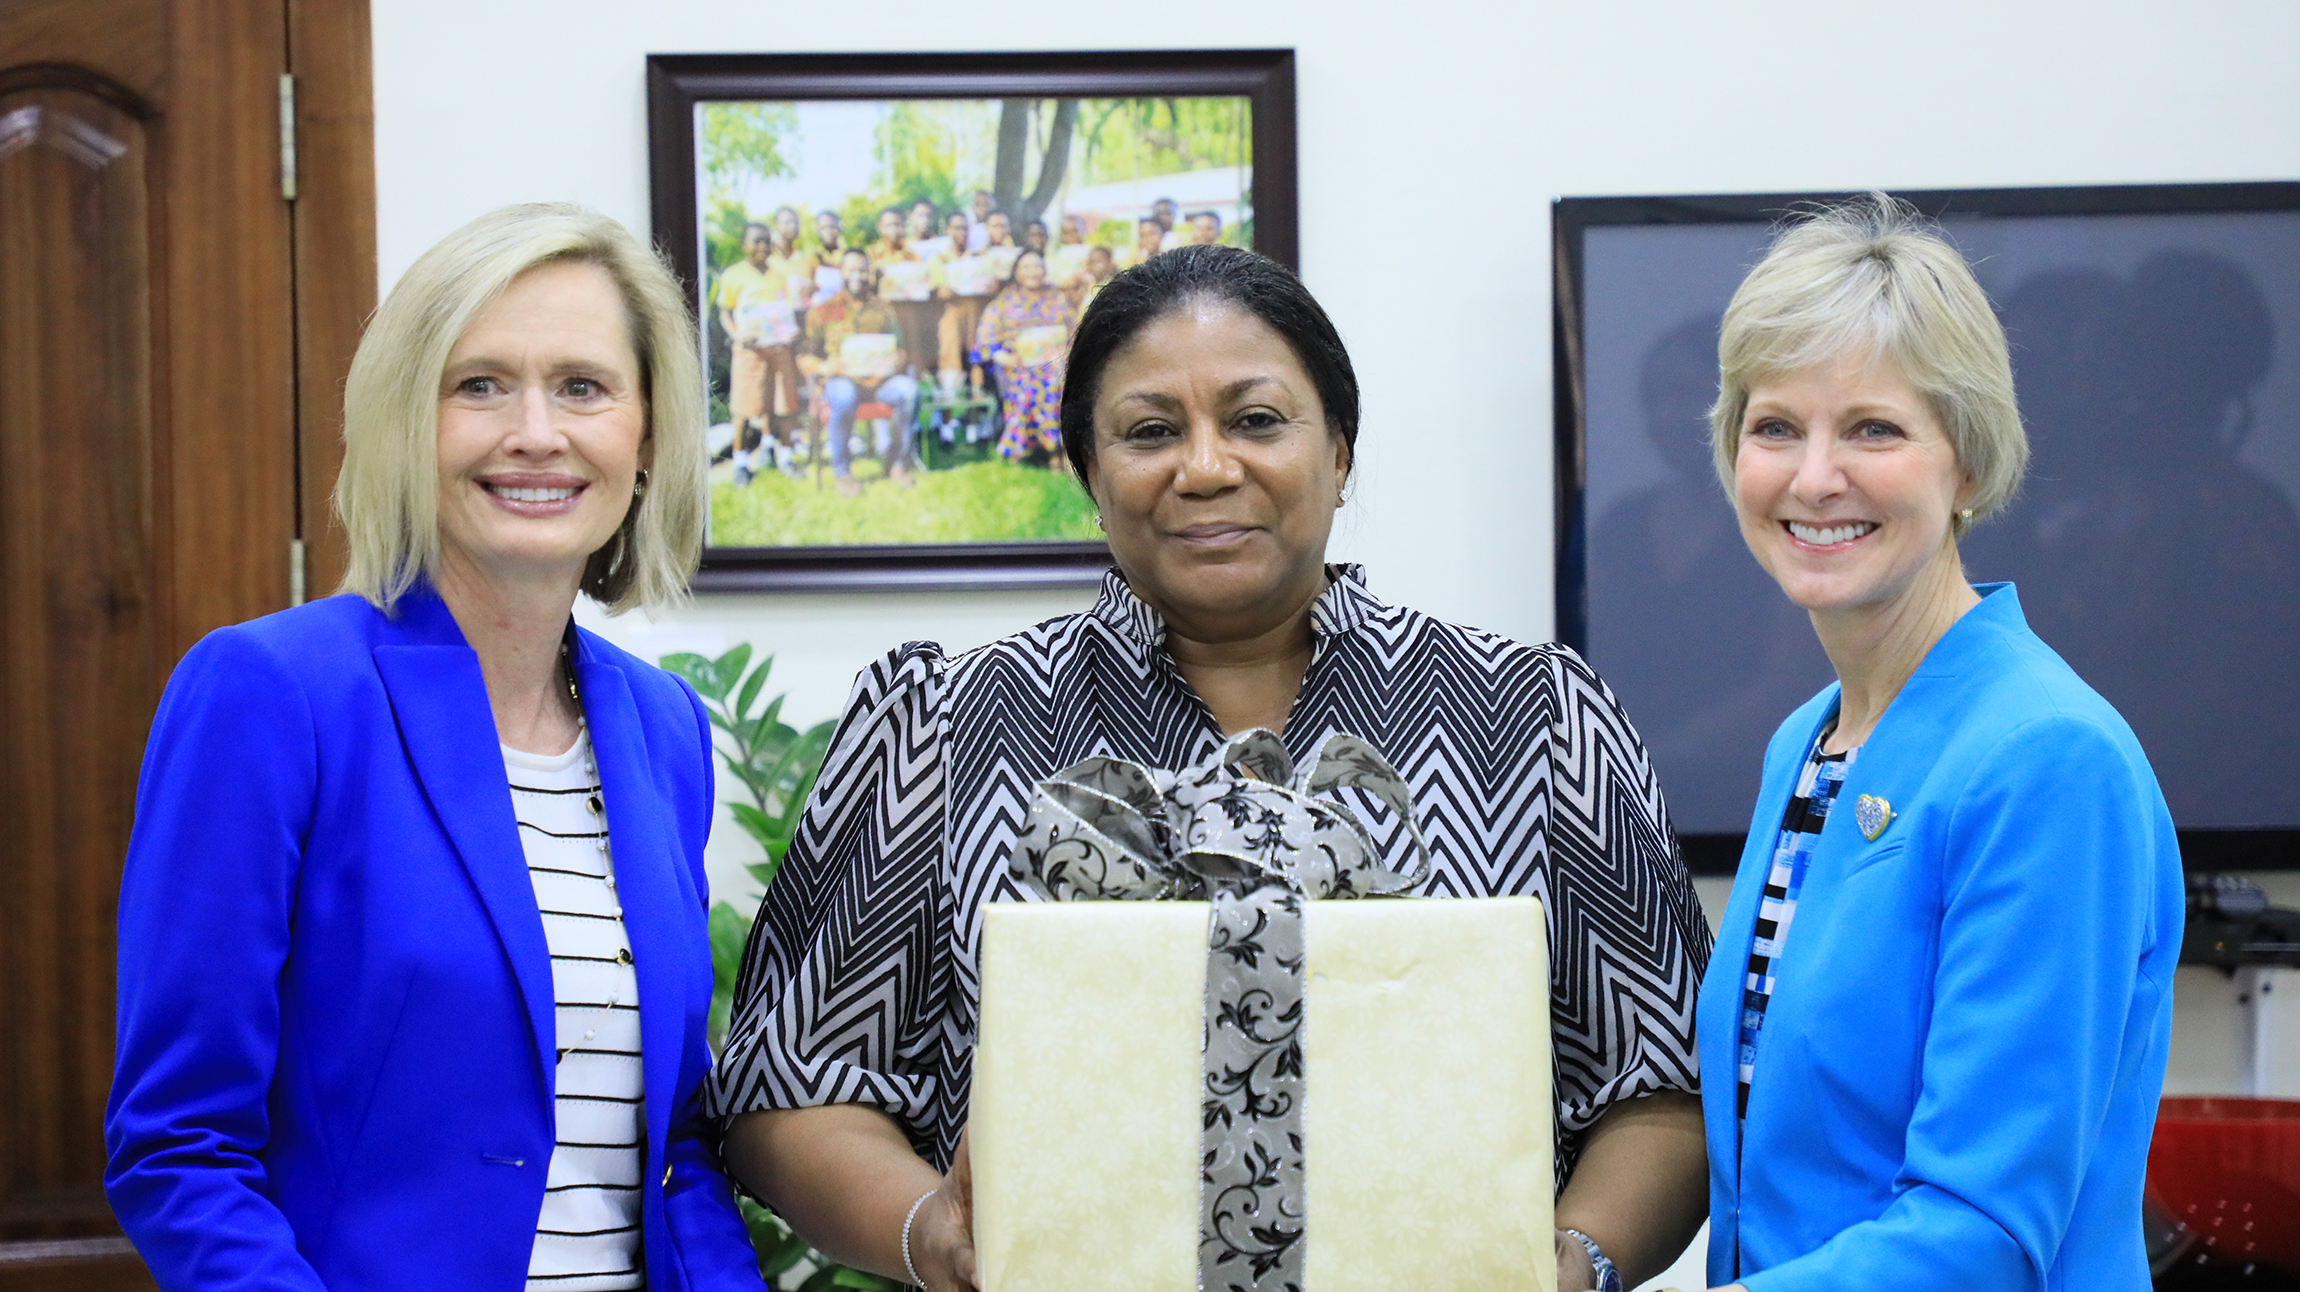 Sister Bonnie H. Cordon, left, and Sister Jean B. Bingham, right, visit Rebecca Naa Okaikor Akufo-Addo, the first lady of the Republic of Ghana, at North Ridge in Accra, Friday, March 1, 2019. The Latter-day Saint leaders presented Her Excellency with a card and gift to acknowledge her upcoming birthday on March 12.